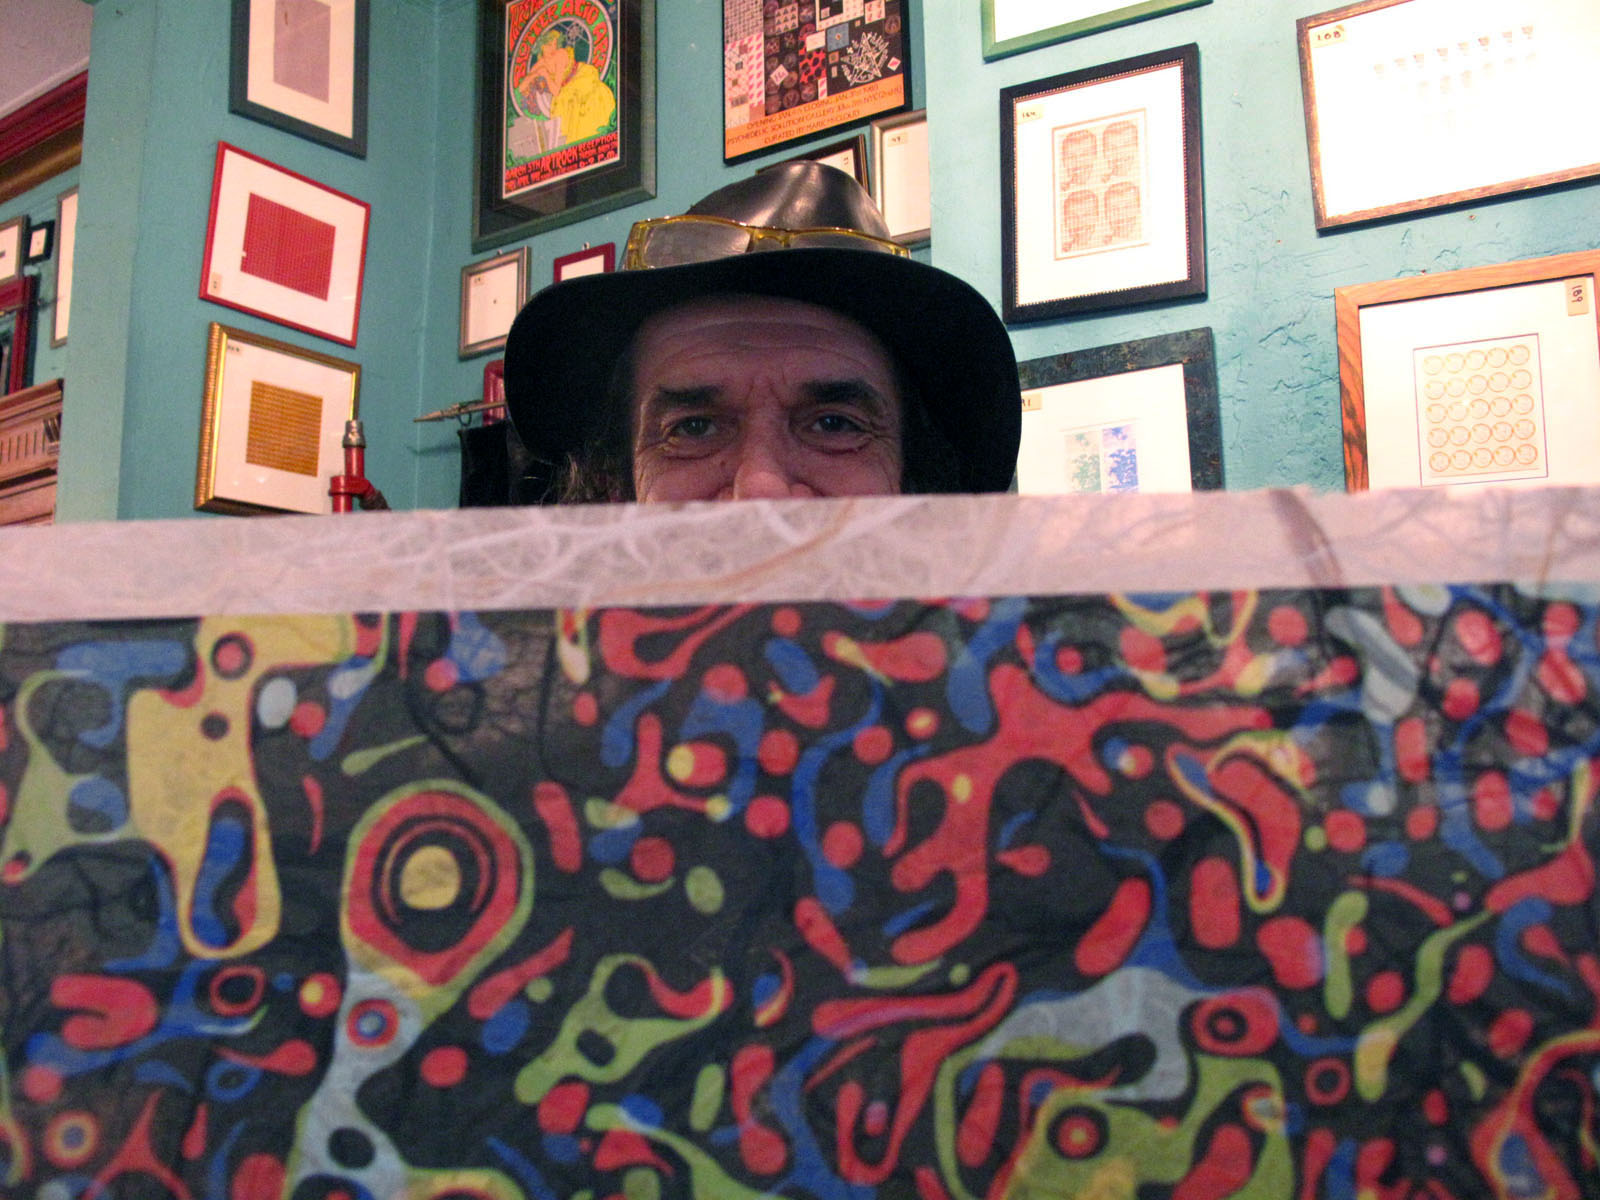 """Mark McCloud revels in psychedelic visuals inside his Mission home, which he dubbs the """"Institute of Illegal Images,"""" a reference to his archive of LSD-inspired art."""